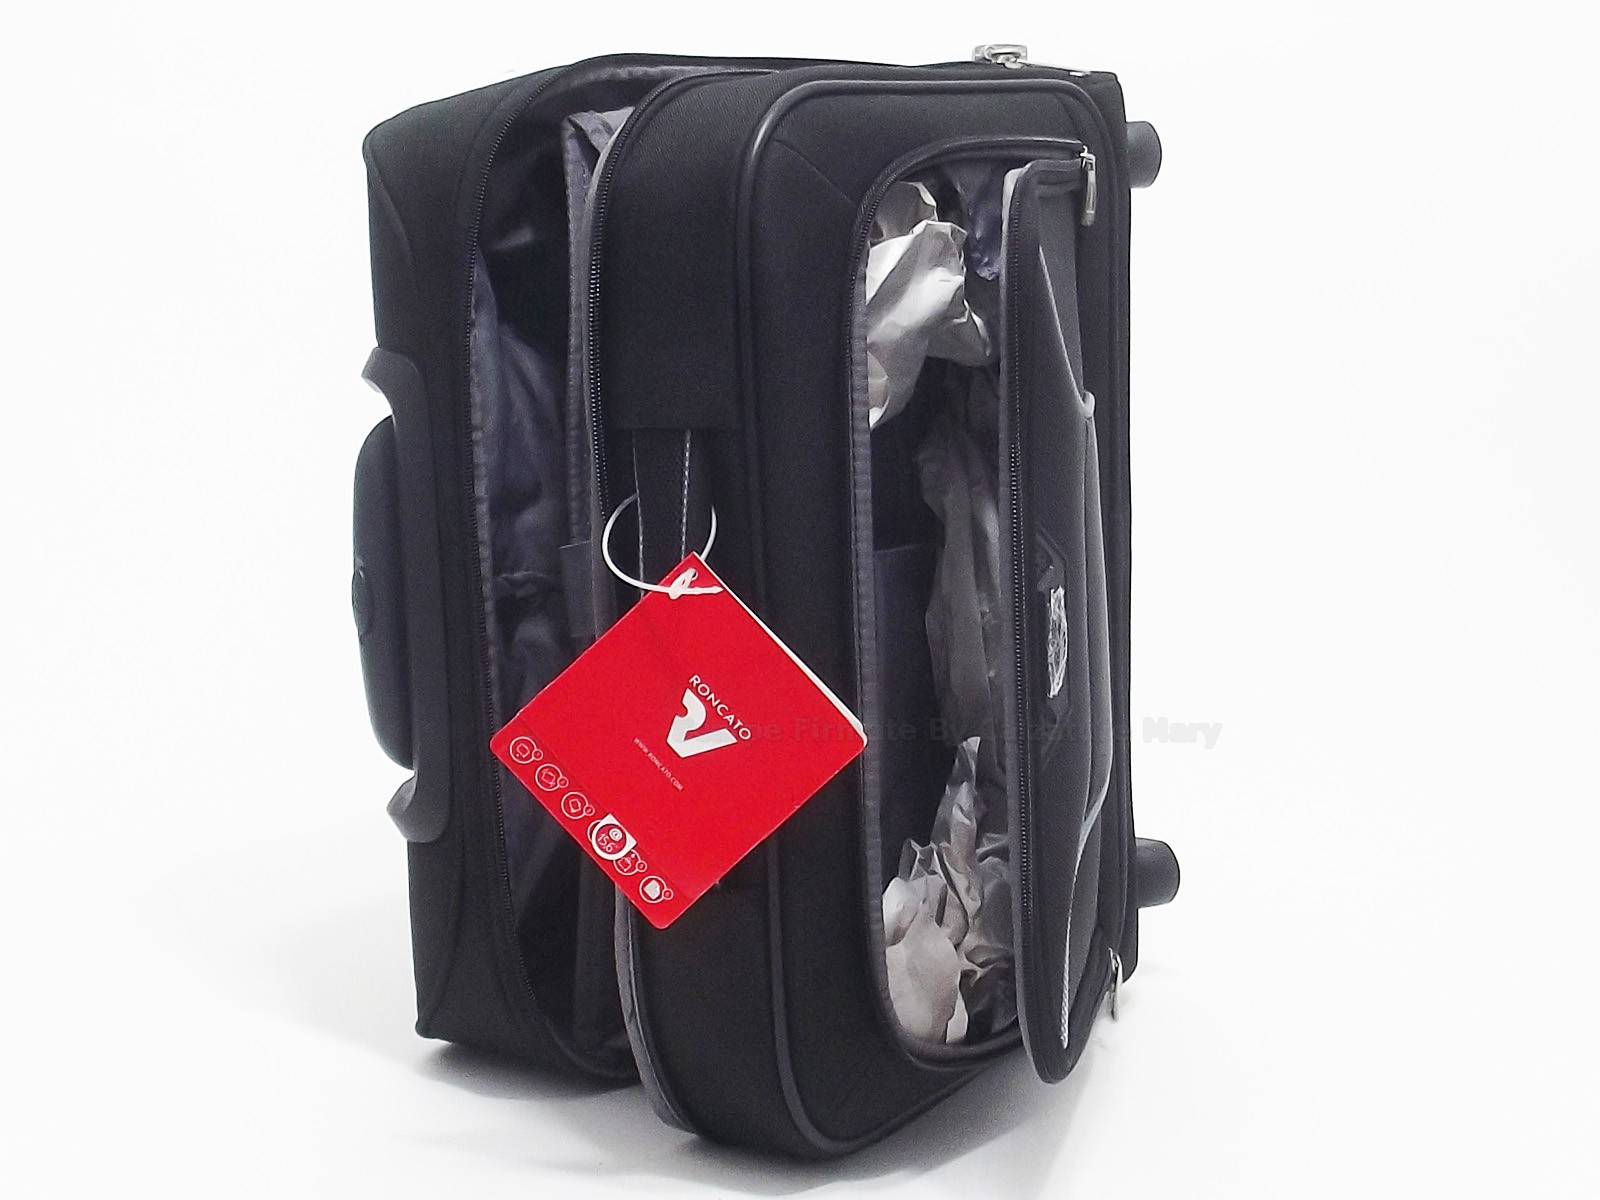 Trolley Luggage Roncato Sky Trolley 419373 Luggage Roncato 419373 pqwRZ1